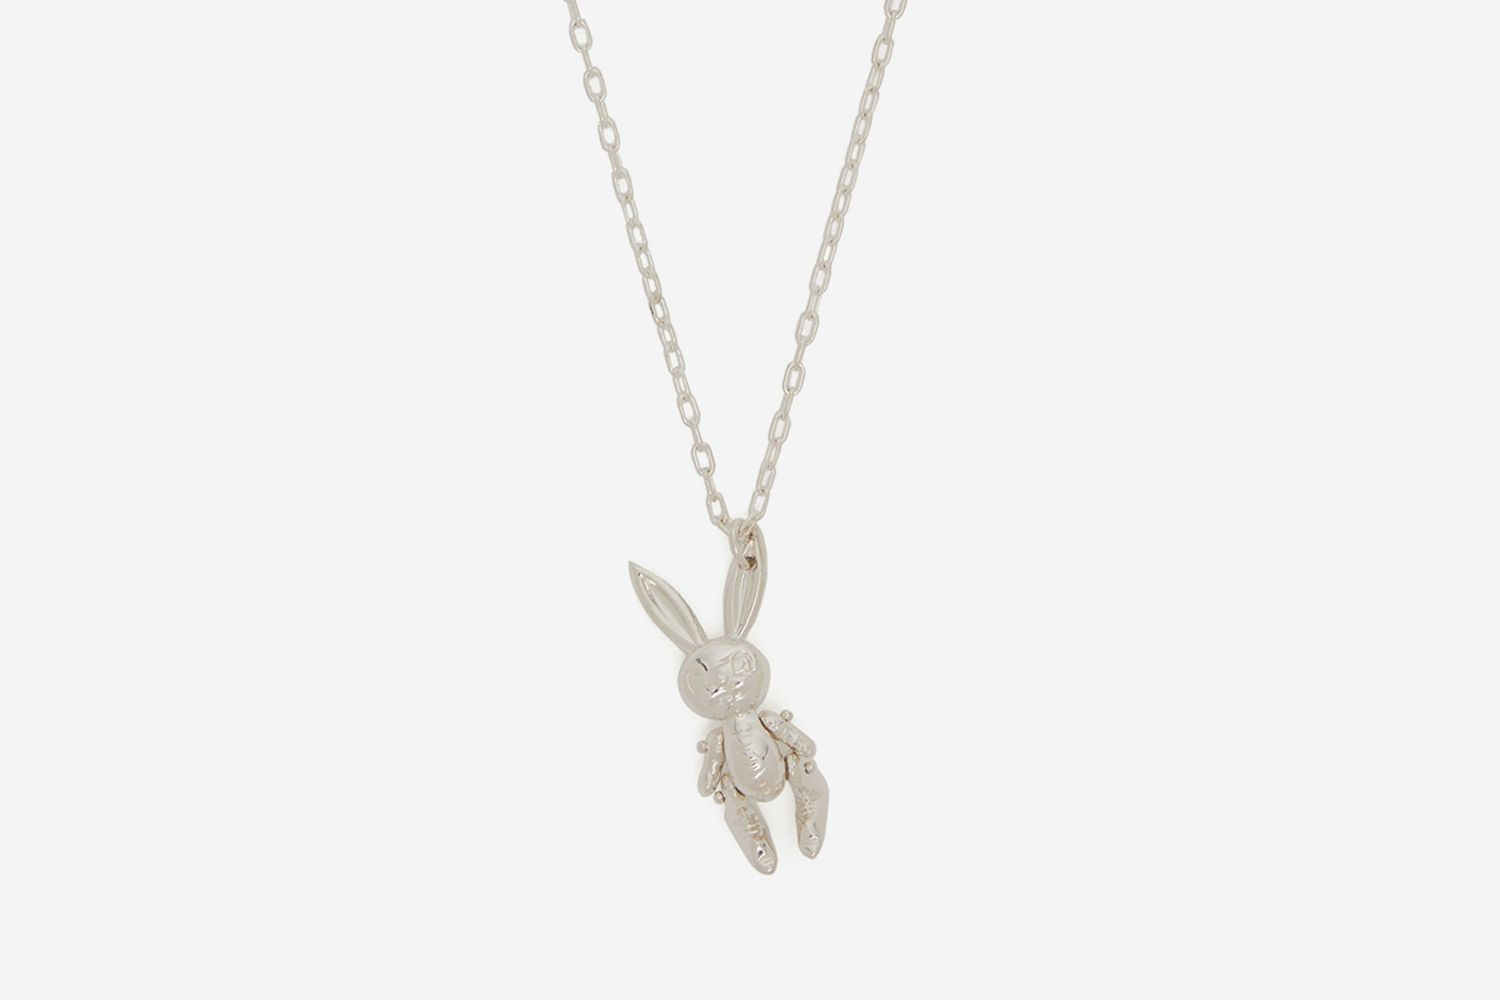 Inflatable-Bunny Necklace